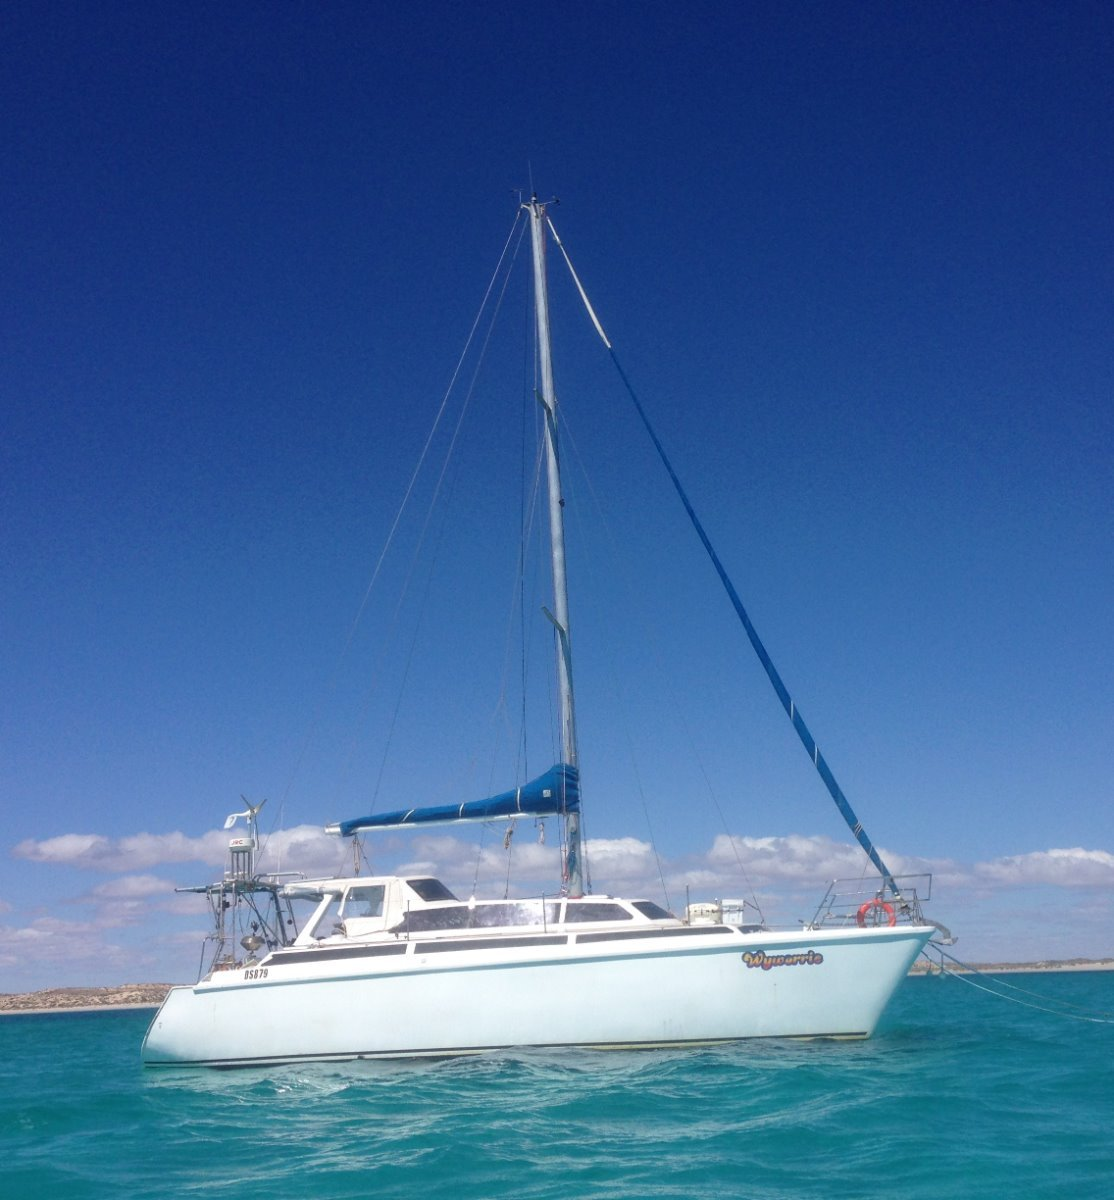 Chamberlin Stratus, Big volume catamaran ready to cruise!!